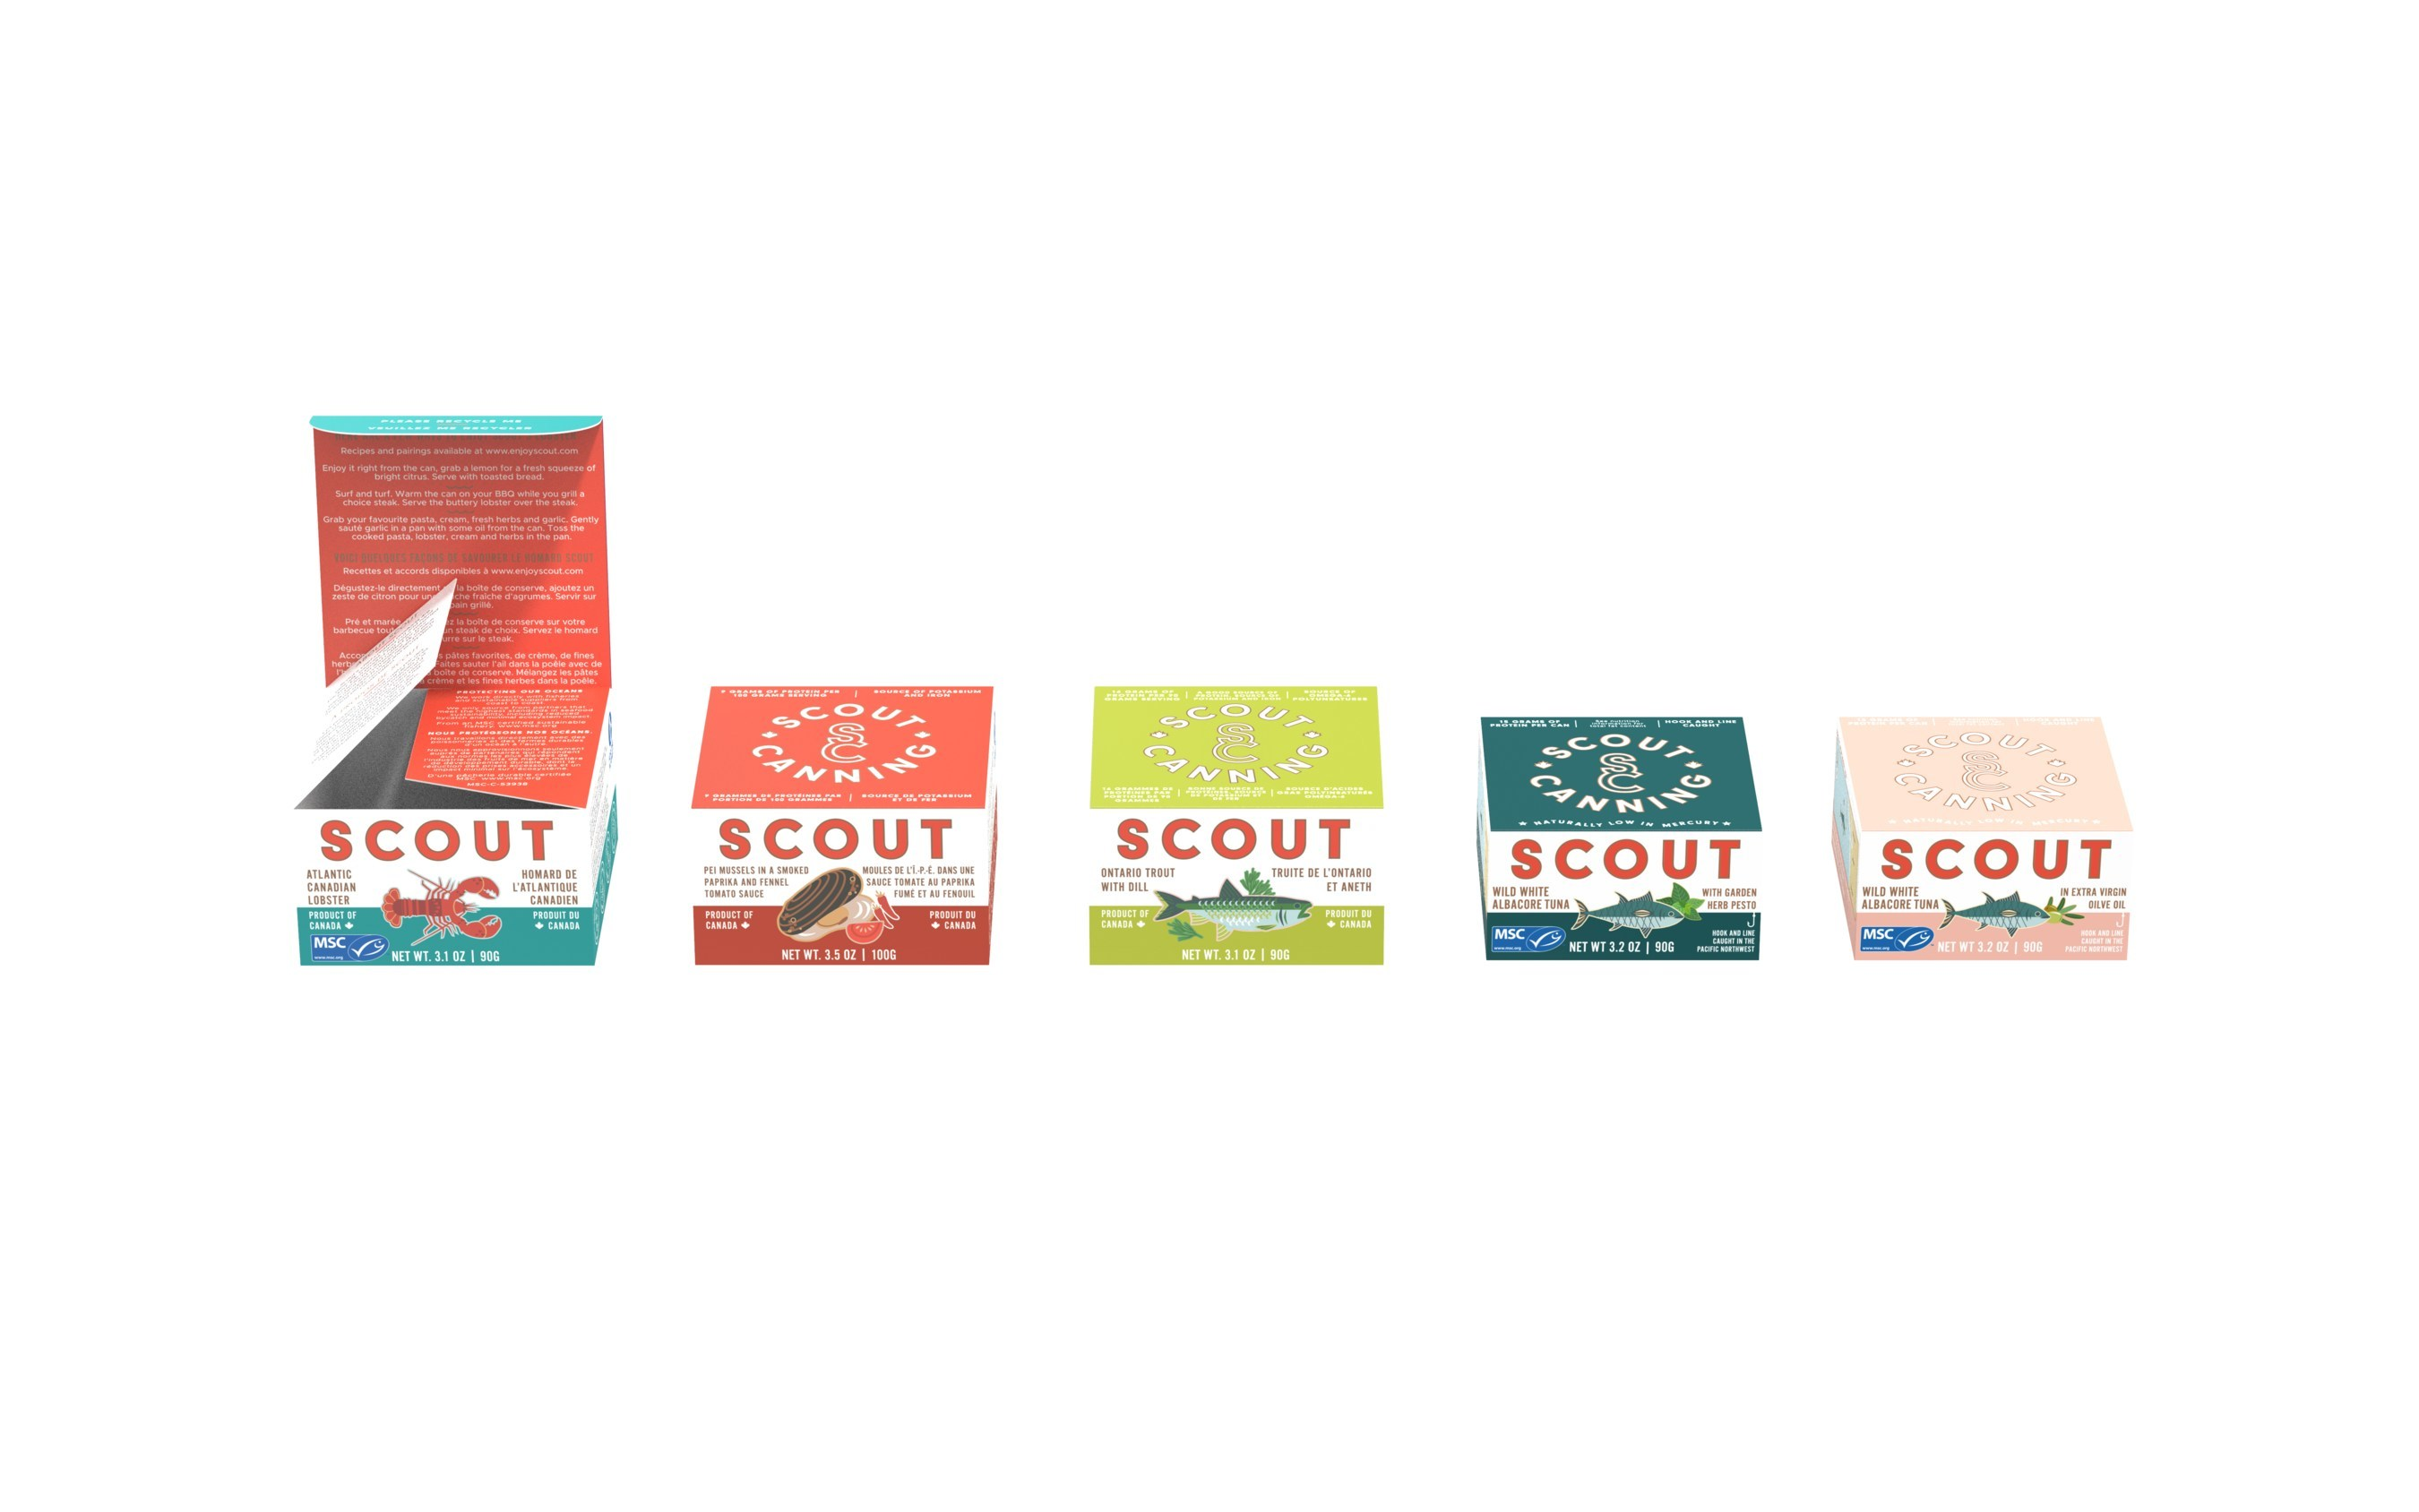 U.S., Canada Sourced Canned Seafood Brand Scout, Launches